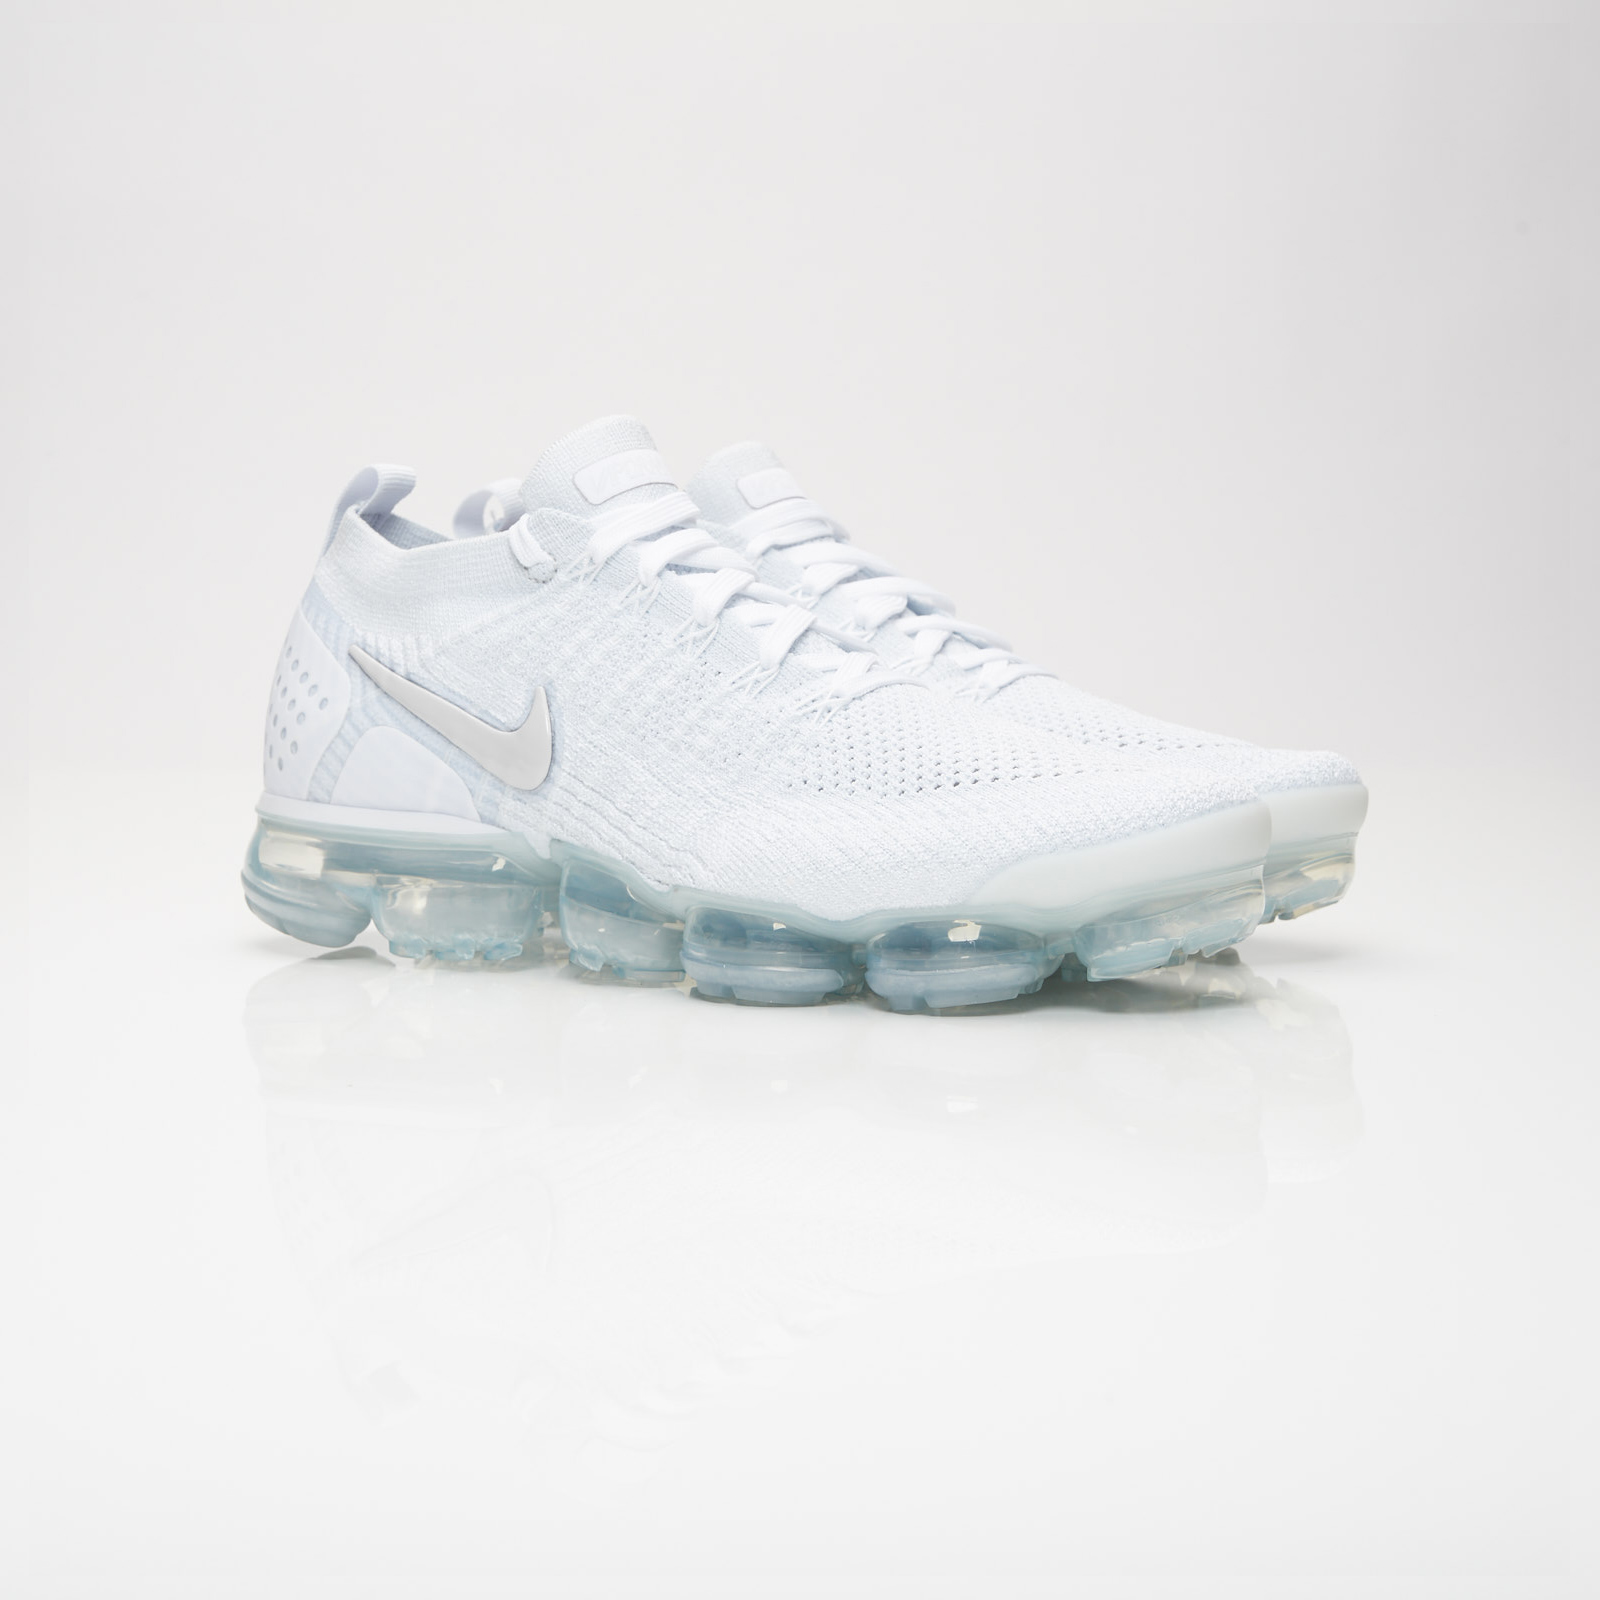 big sale 27b17 29a67 Nike Air Vapormax Flyknit 2 - 942842-105 - Sneakersnstuff ...